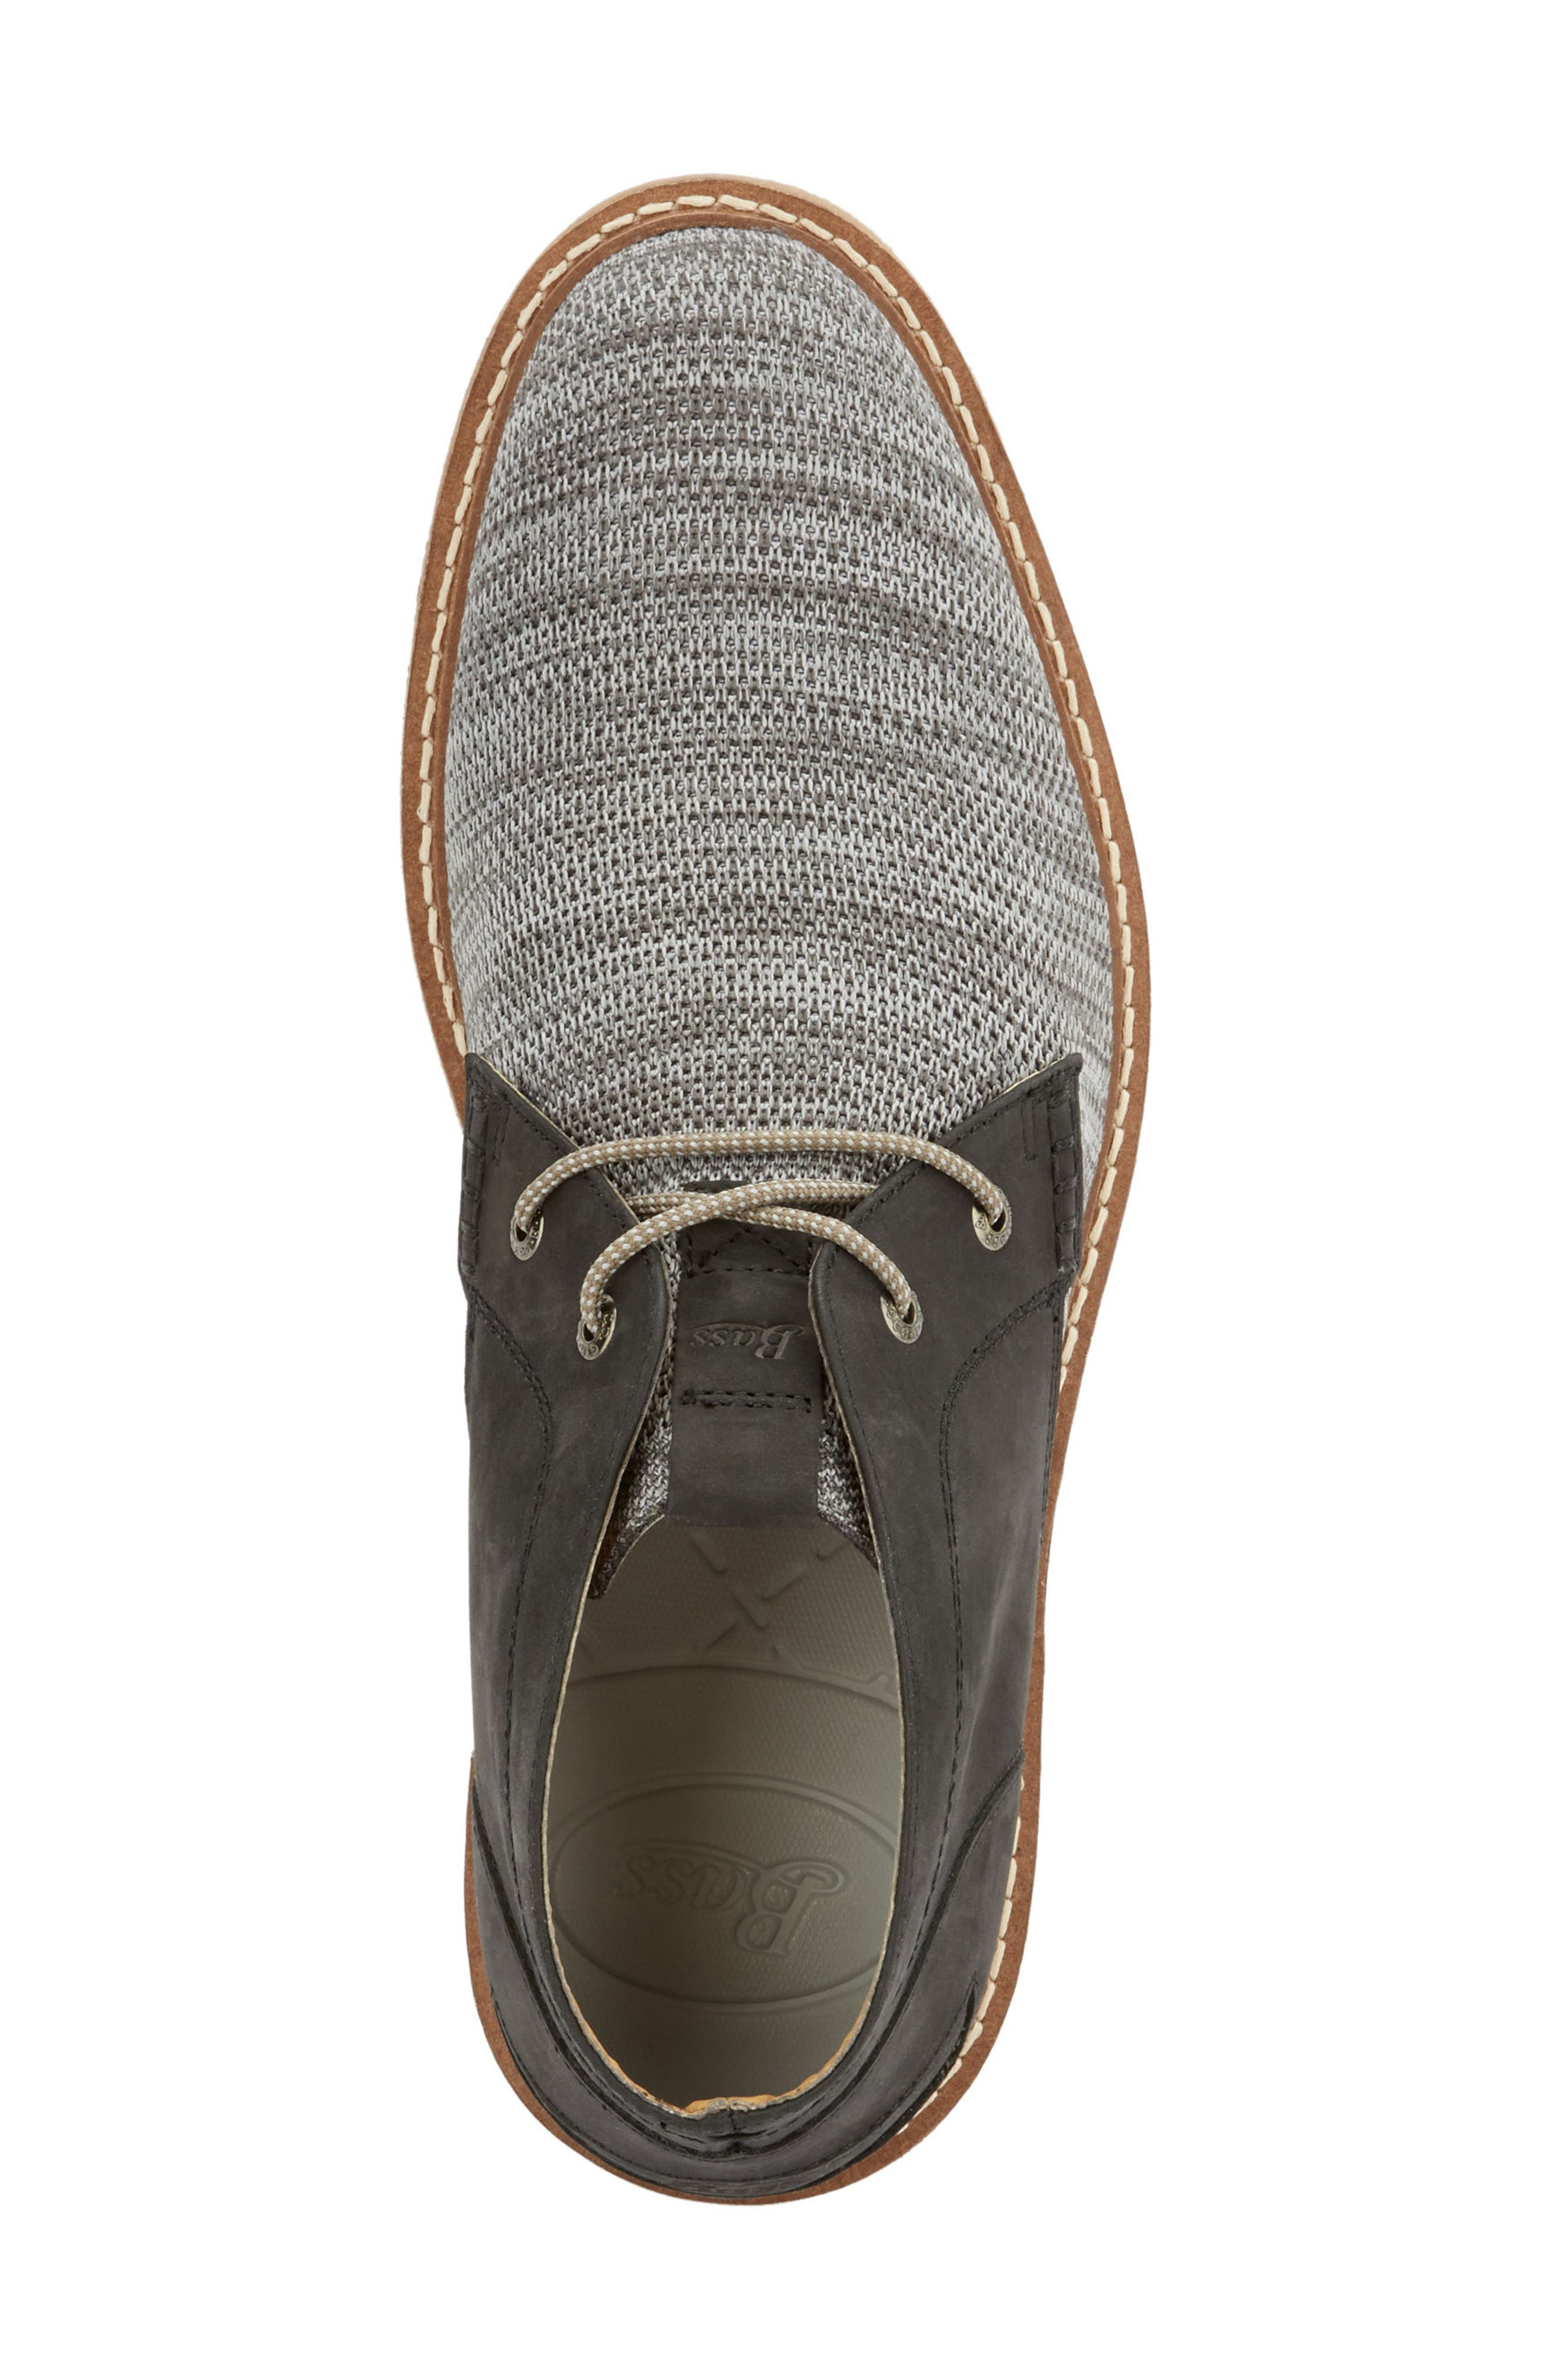 Buck 2.0 Chukka Boot,                             Alternate thumbnail 5, color,                             001